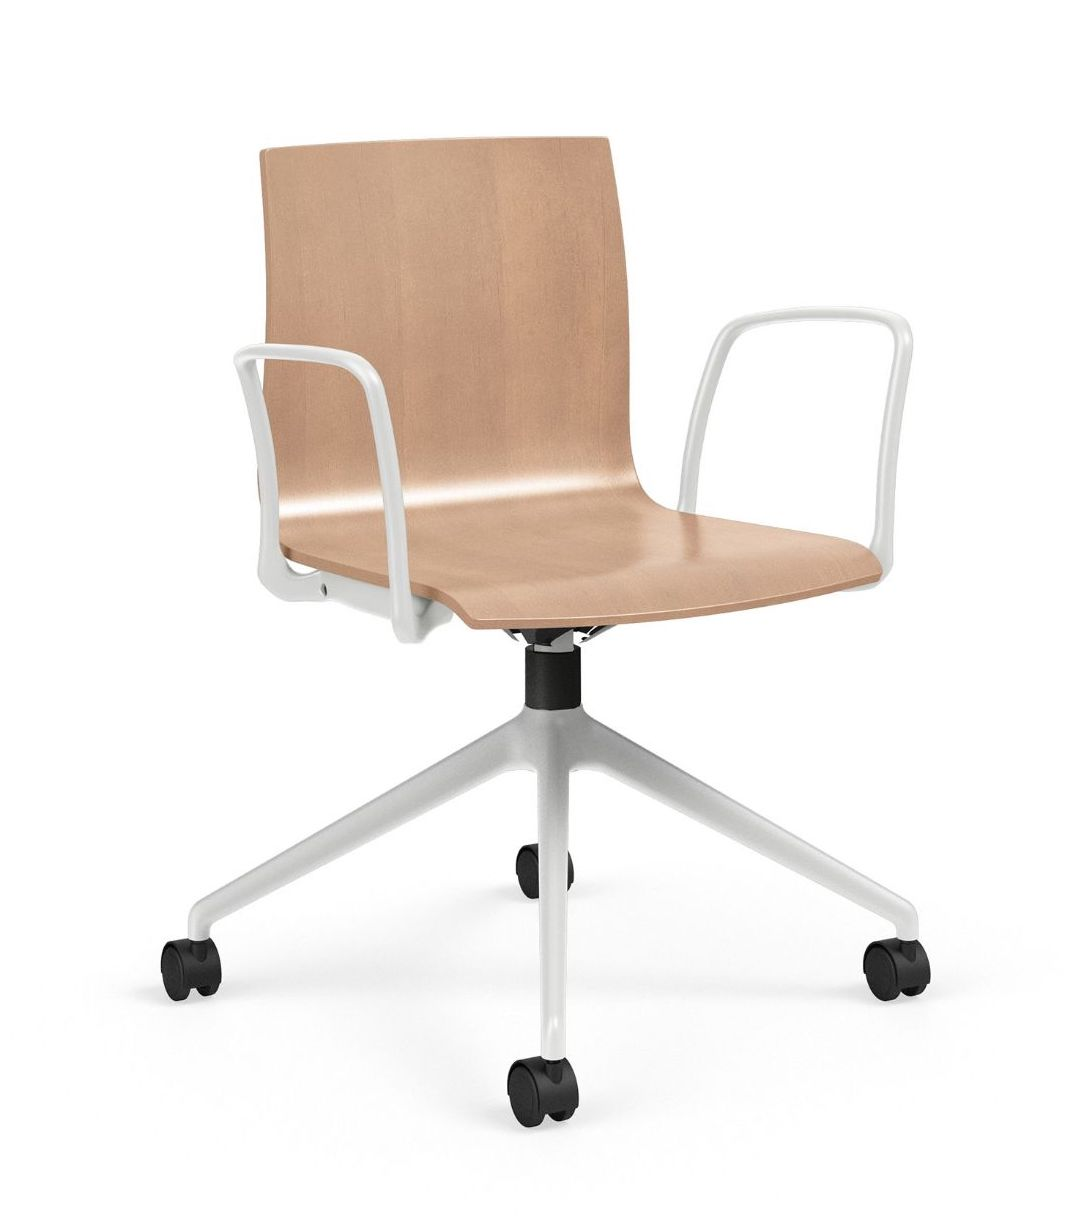 voz swivel chair with arms